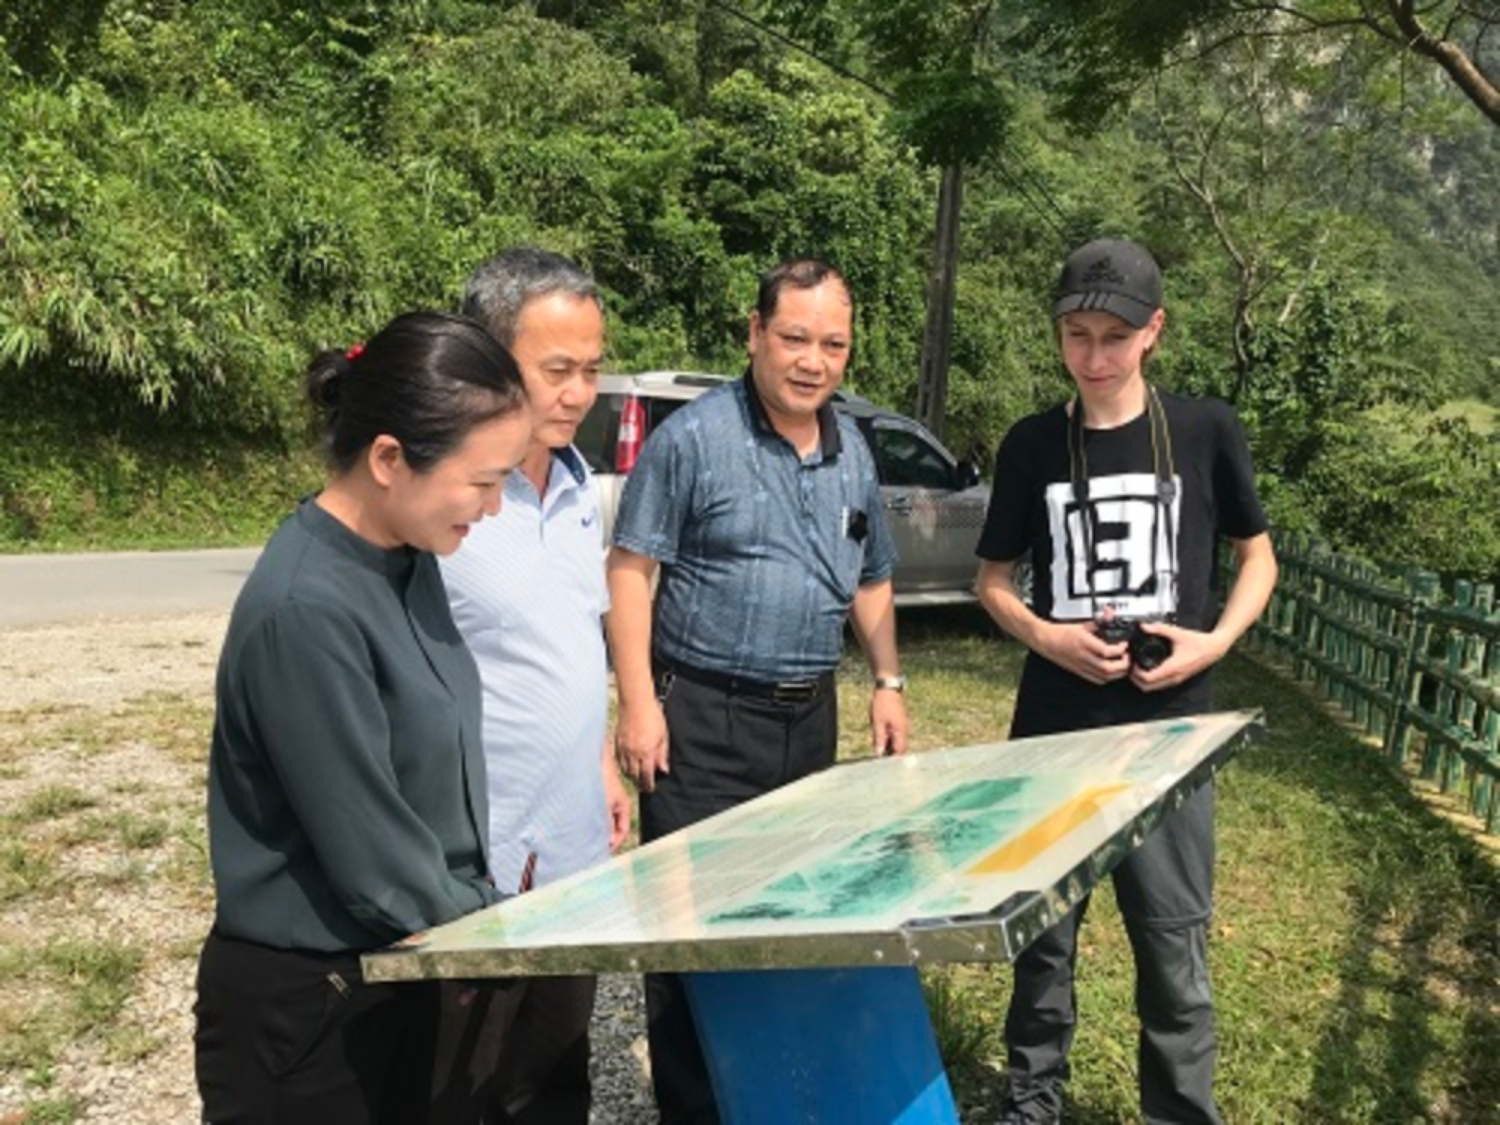 Management boar of Non nuoc Cao Bang UGGp cooperated with the Volunterr of NATCOM of Germany conducted field inspection on heritage sites